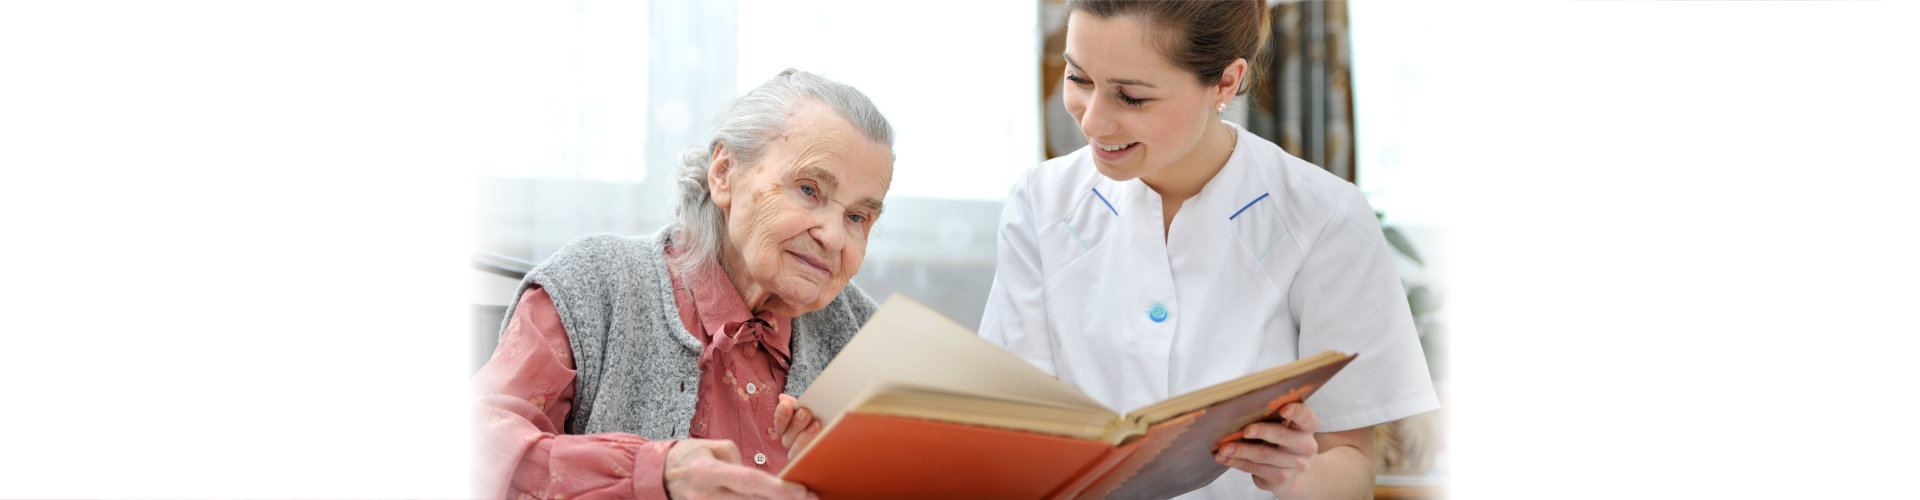 caregiver and elderly woman reading book